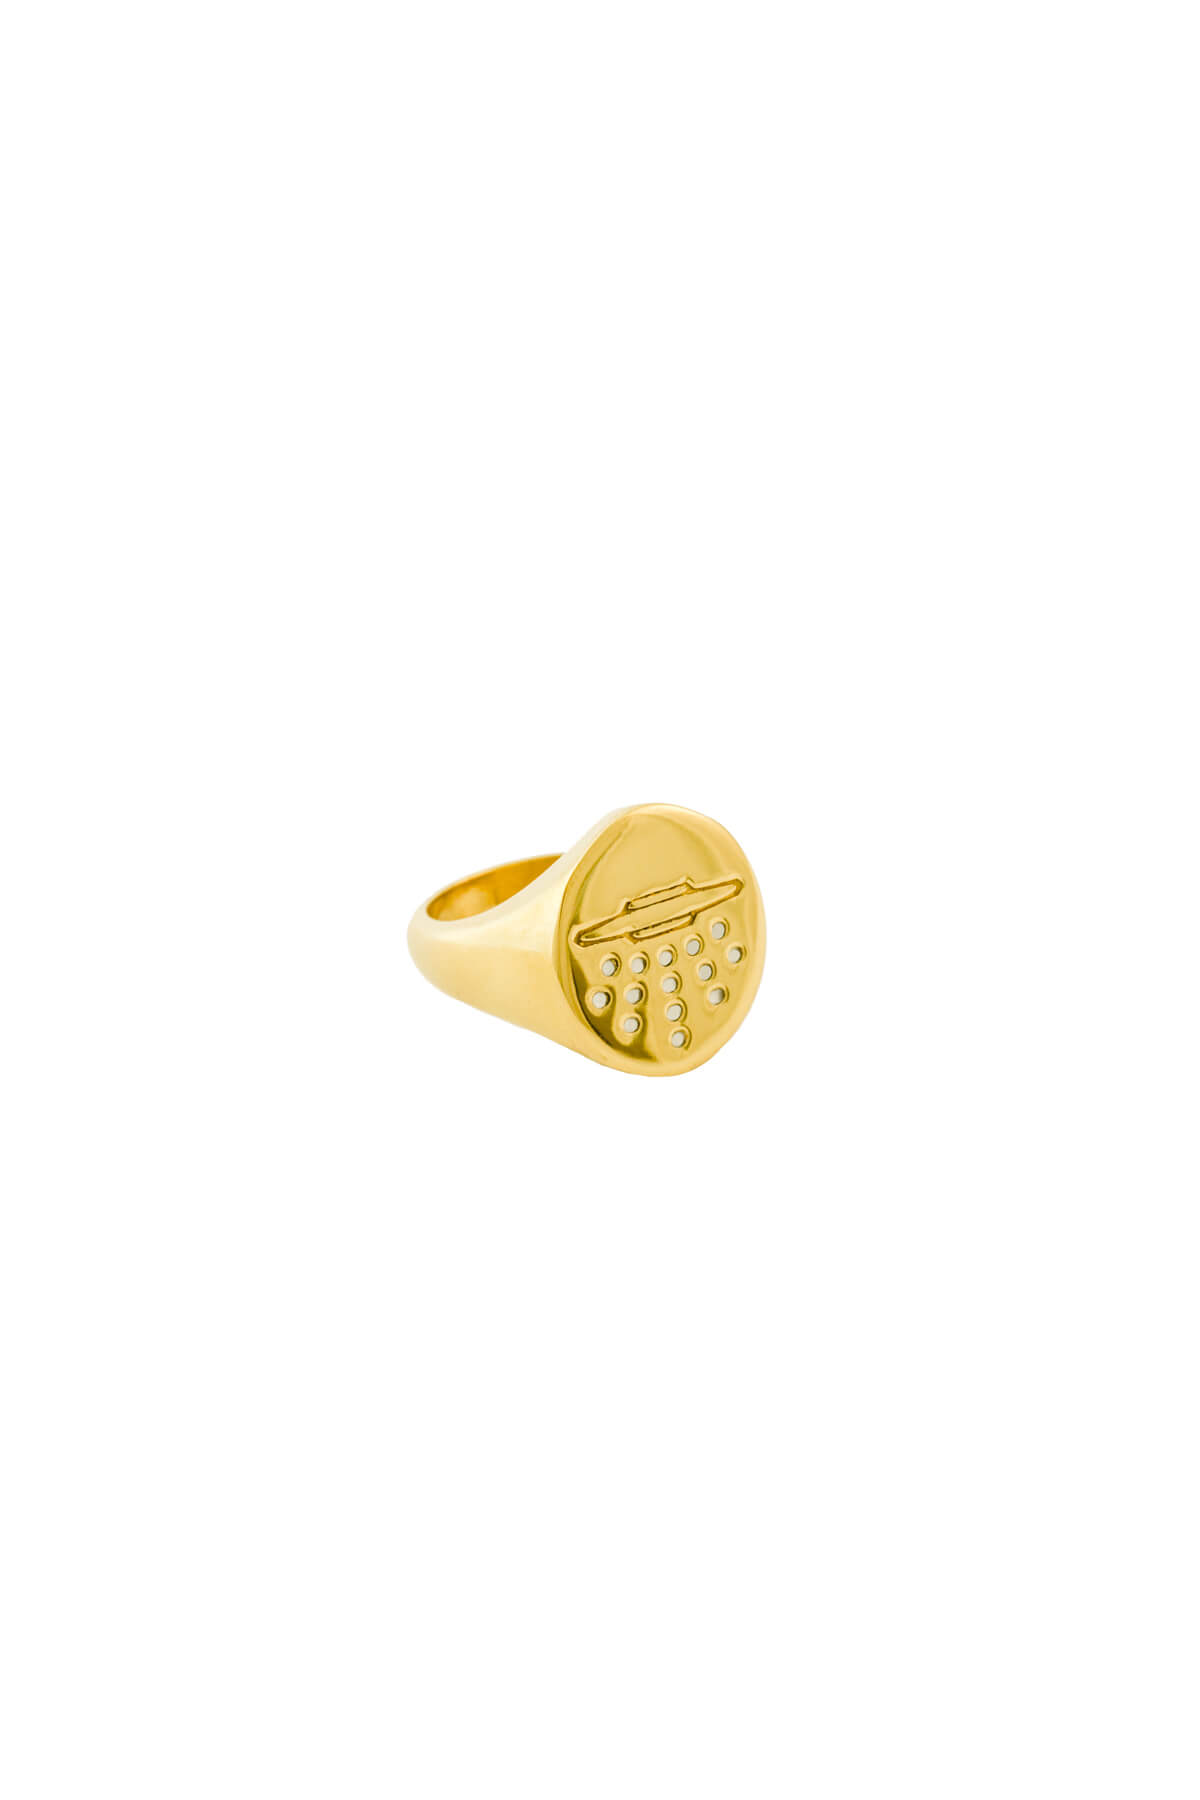 the-ufo-signet-ring-by-glenda-lopez-lateral